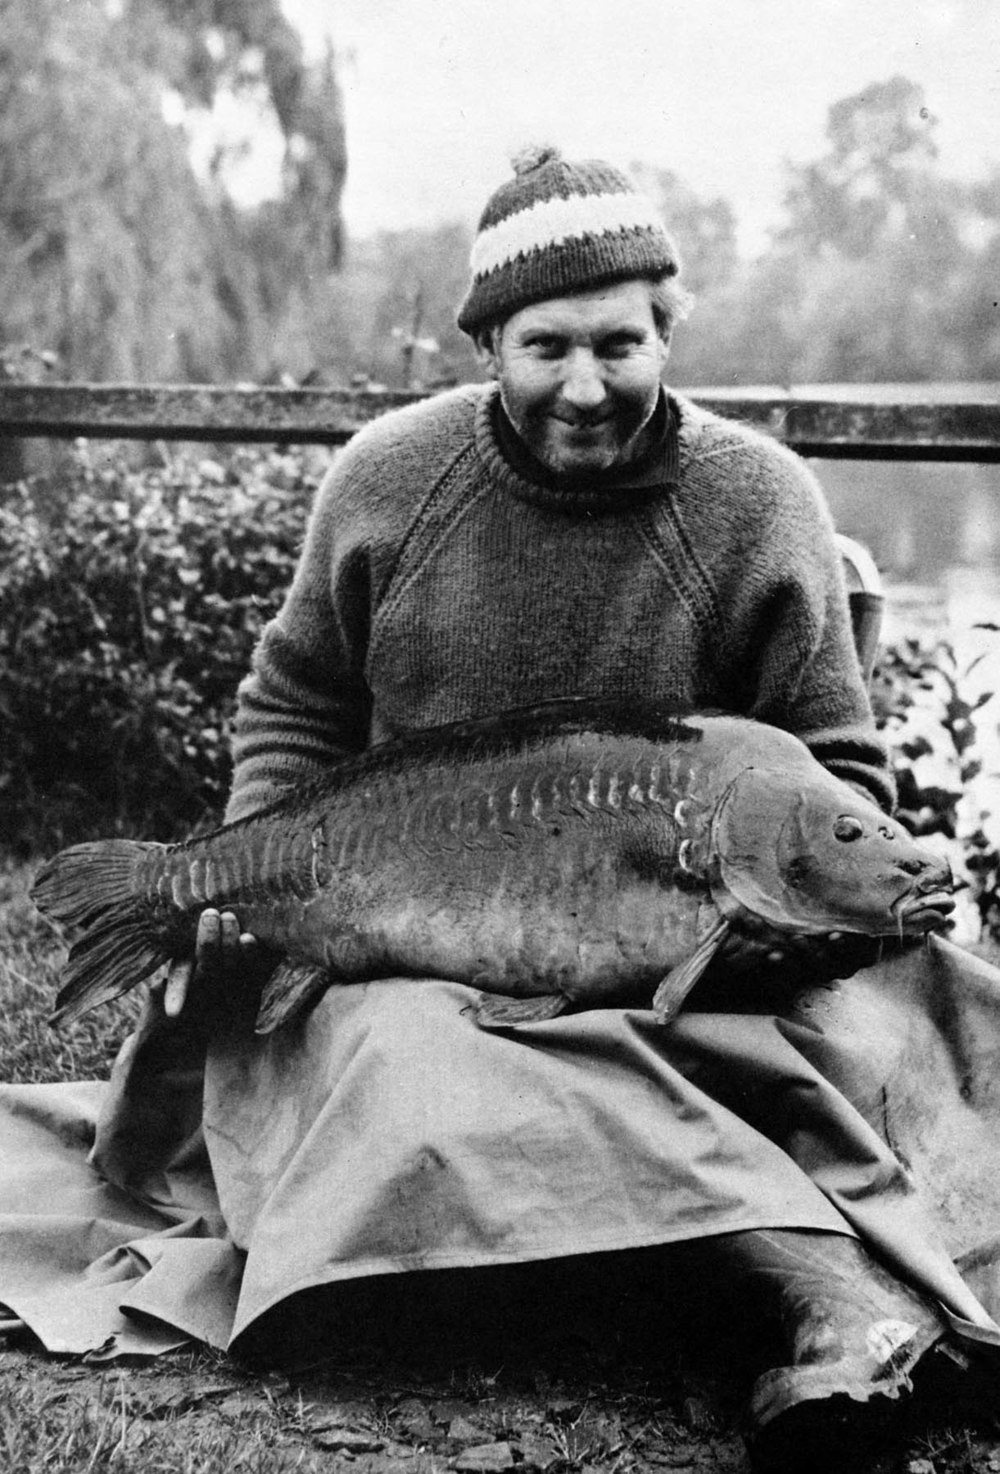 Top carp angler of the day, Jack Hilton, with his first carp from Redmire Pool. At 35lb it was the largest carp recorded in 1967.